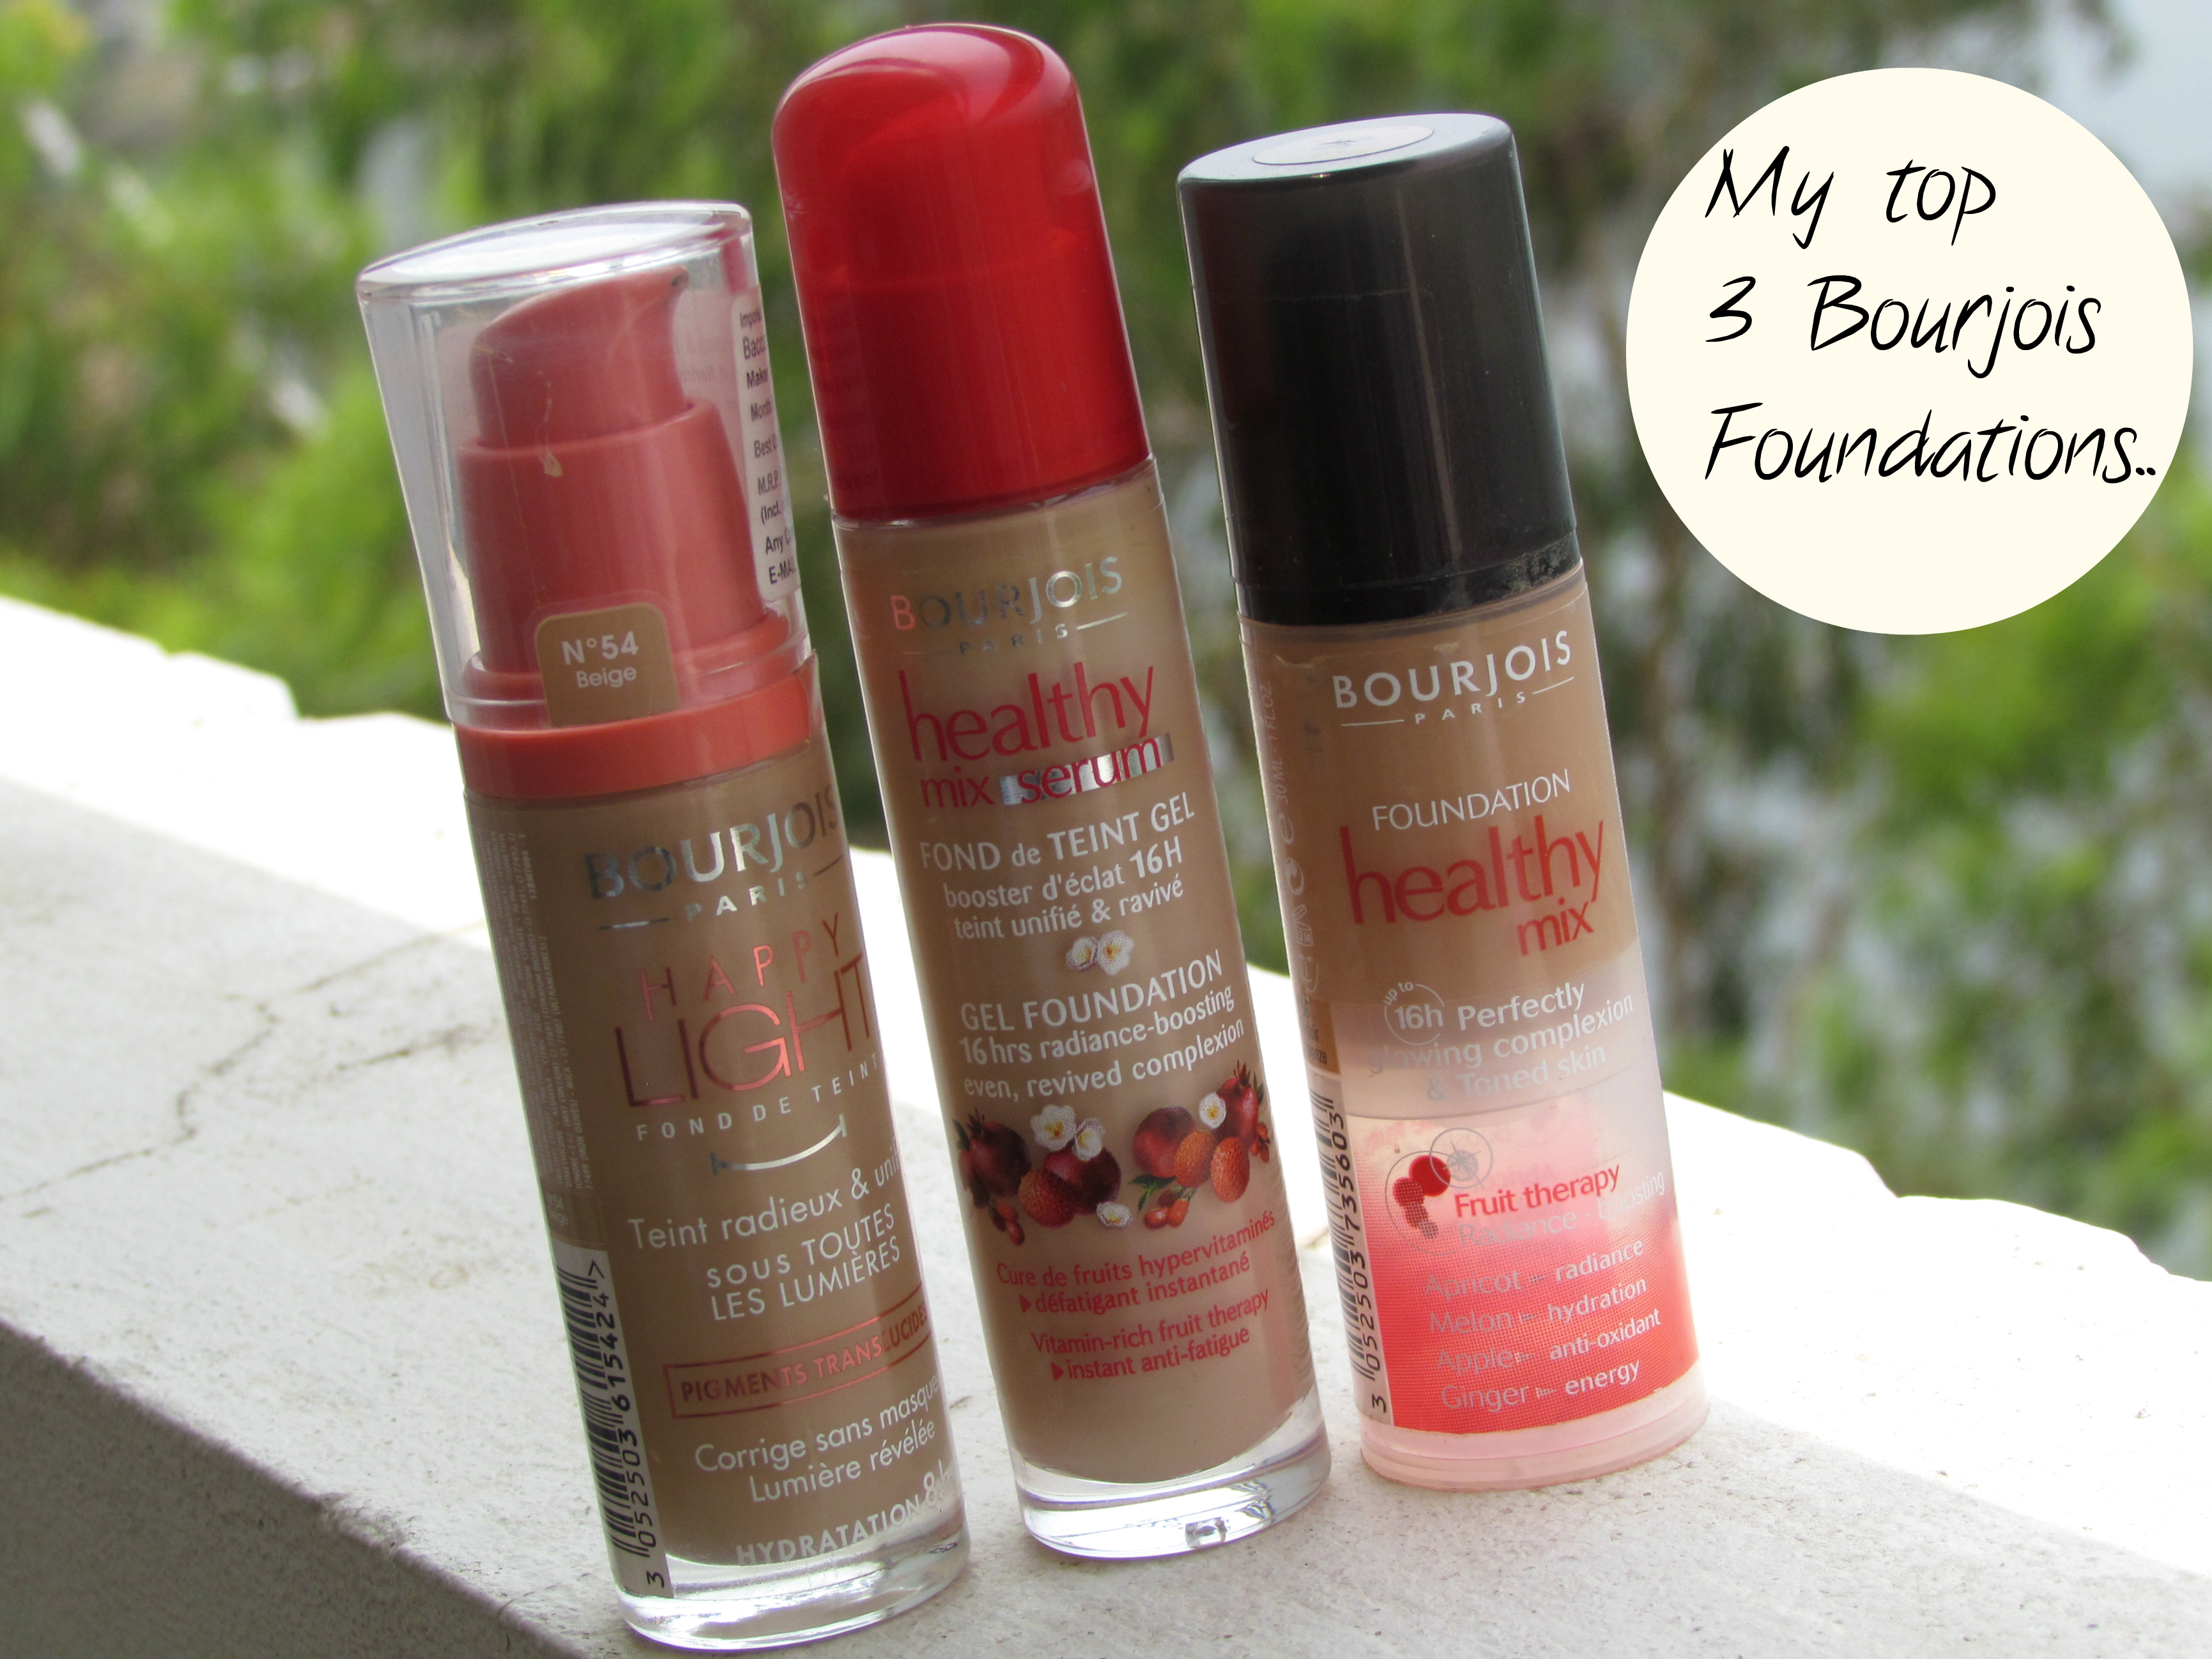 My top 3 Bourjois Foundations